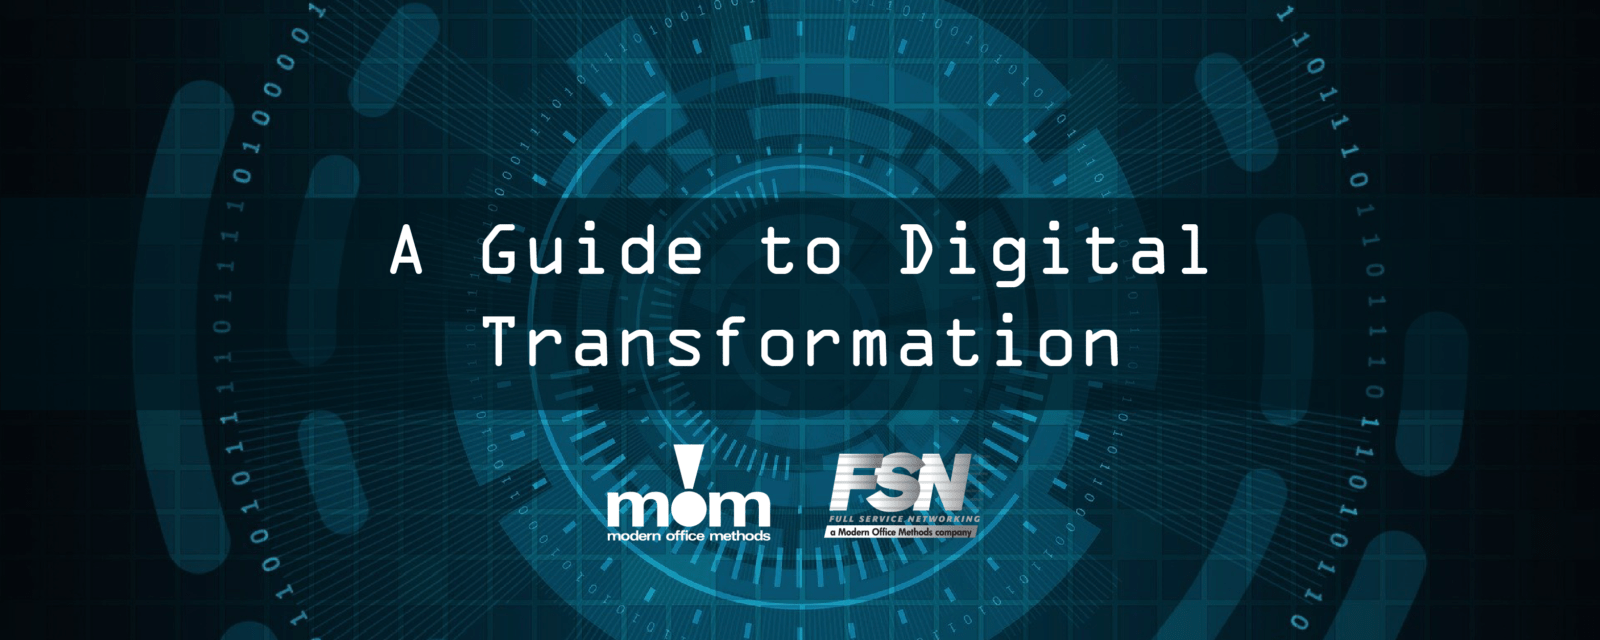 A Guide to Digital Transformation